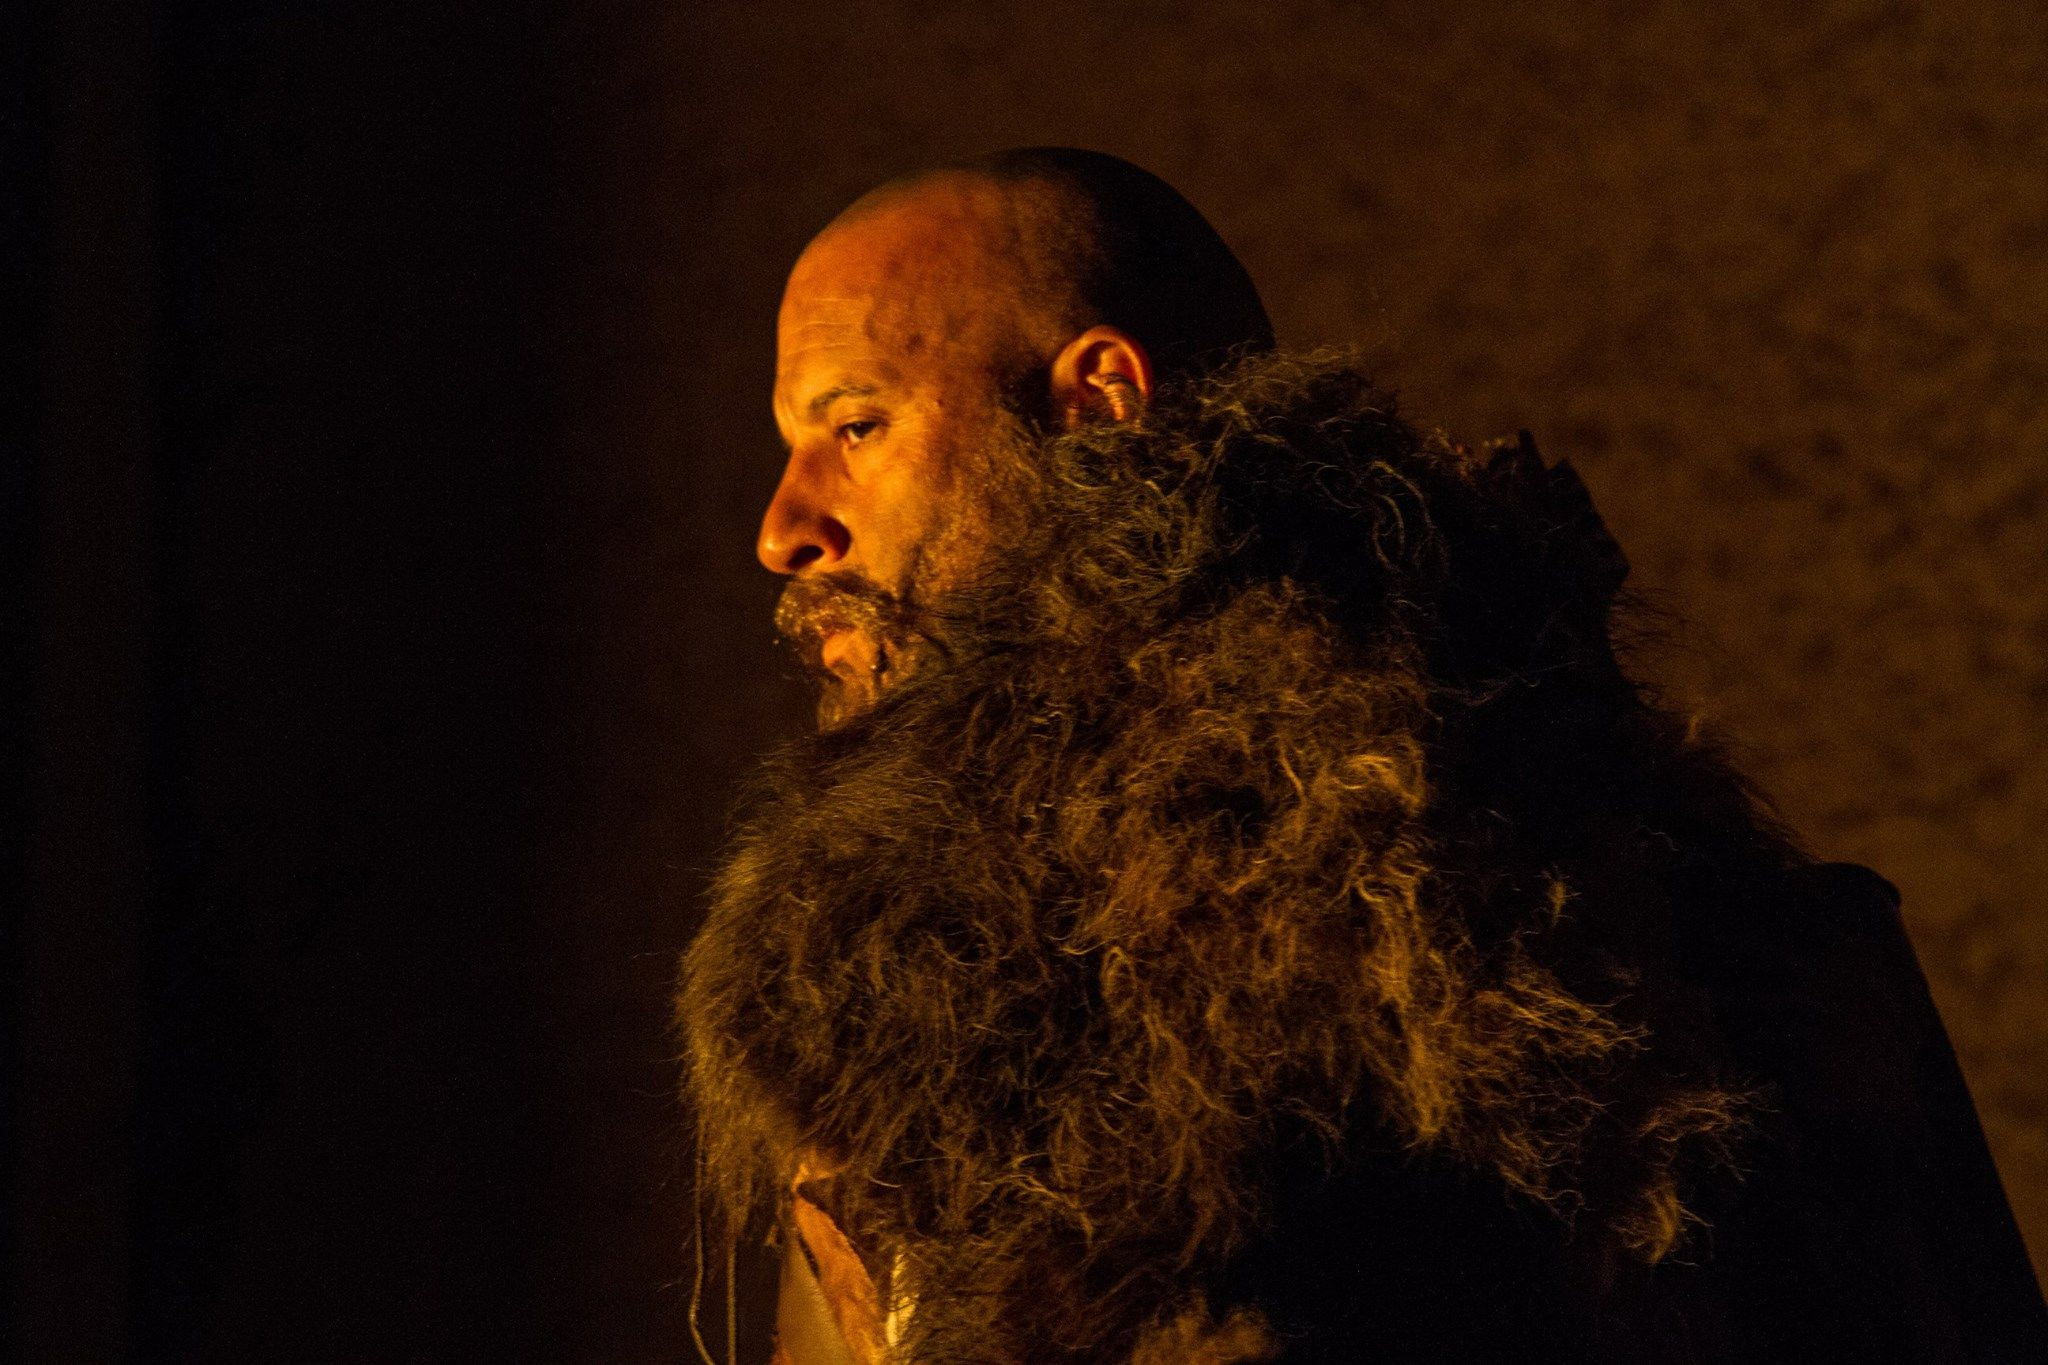 vin-diesel-releases-first-photo-from-the-last-witch-hunter